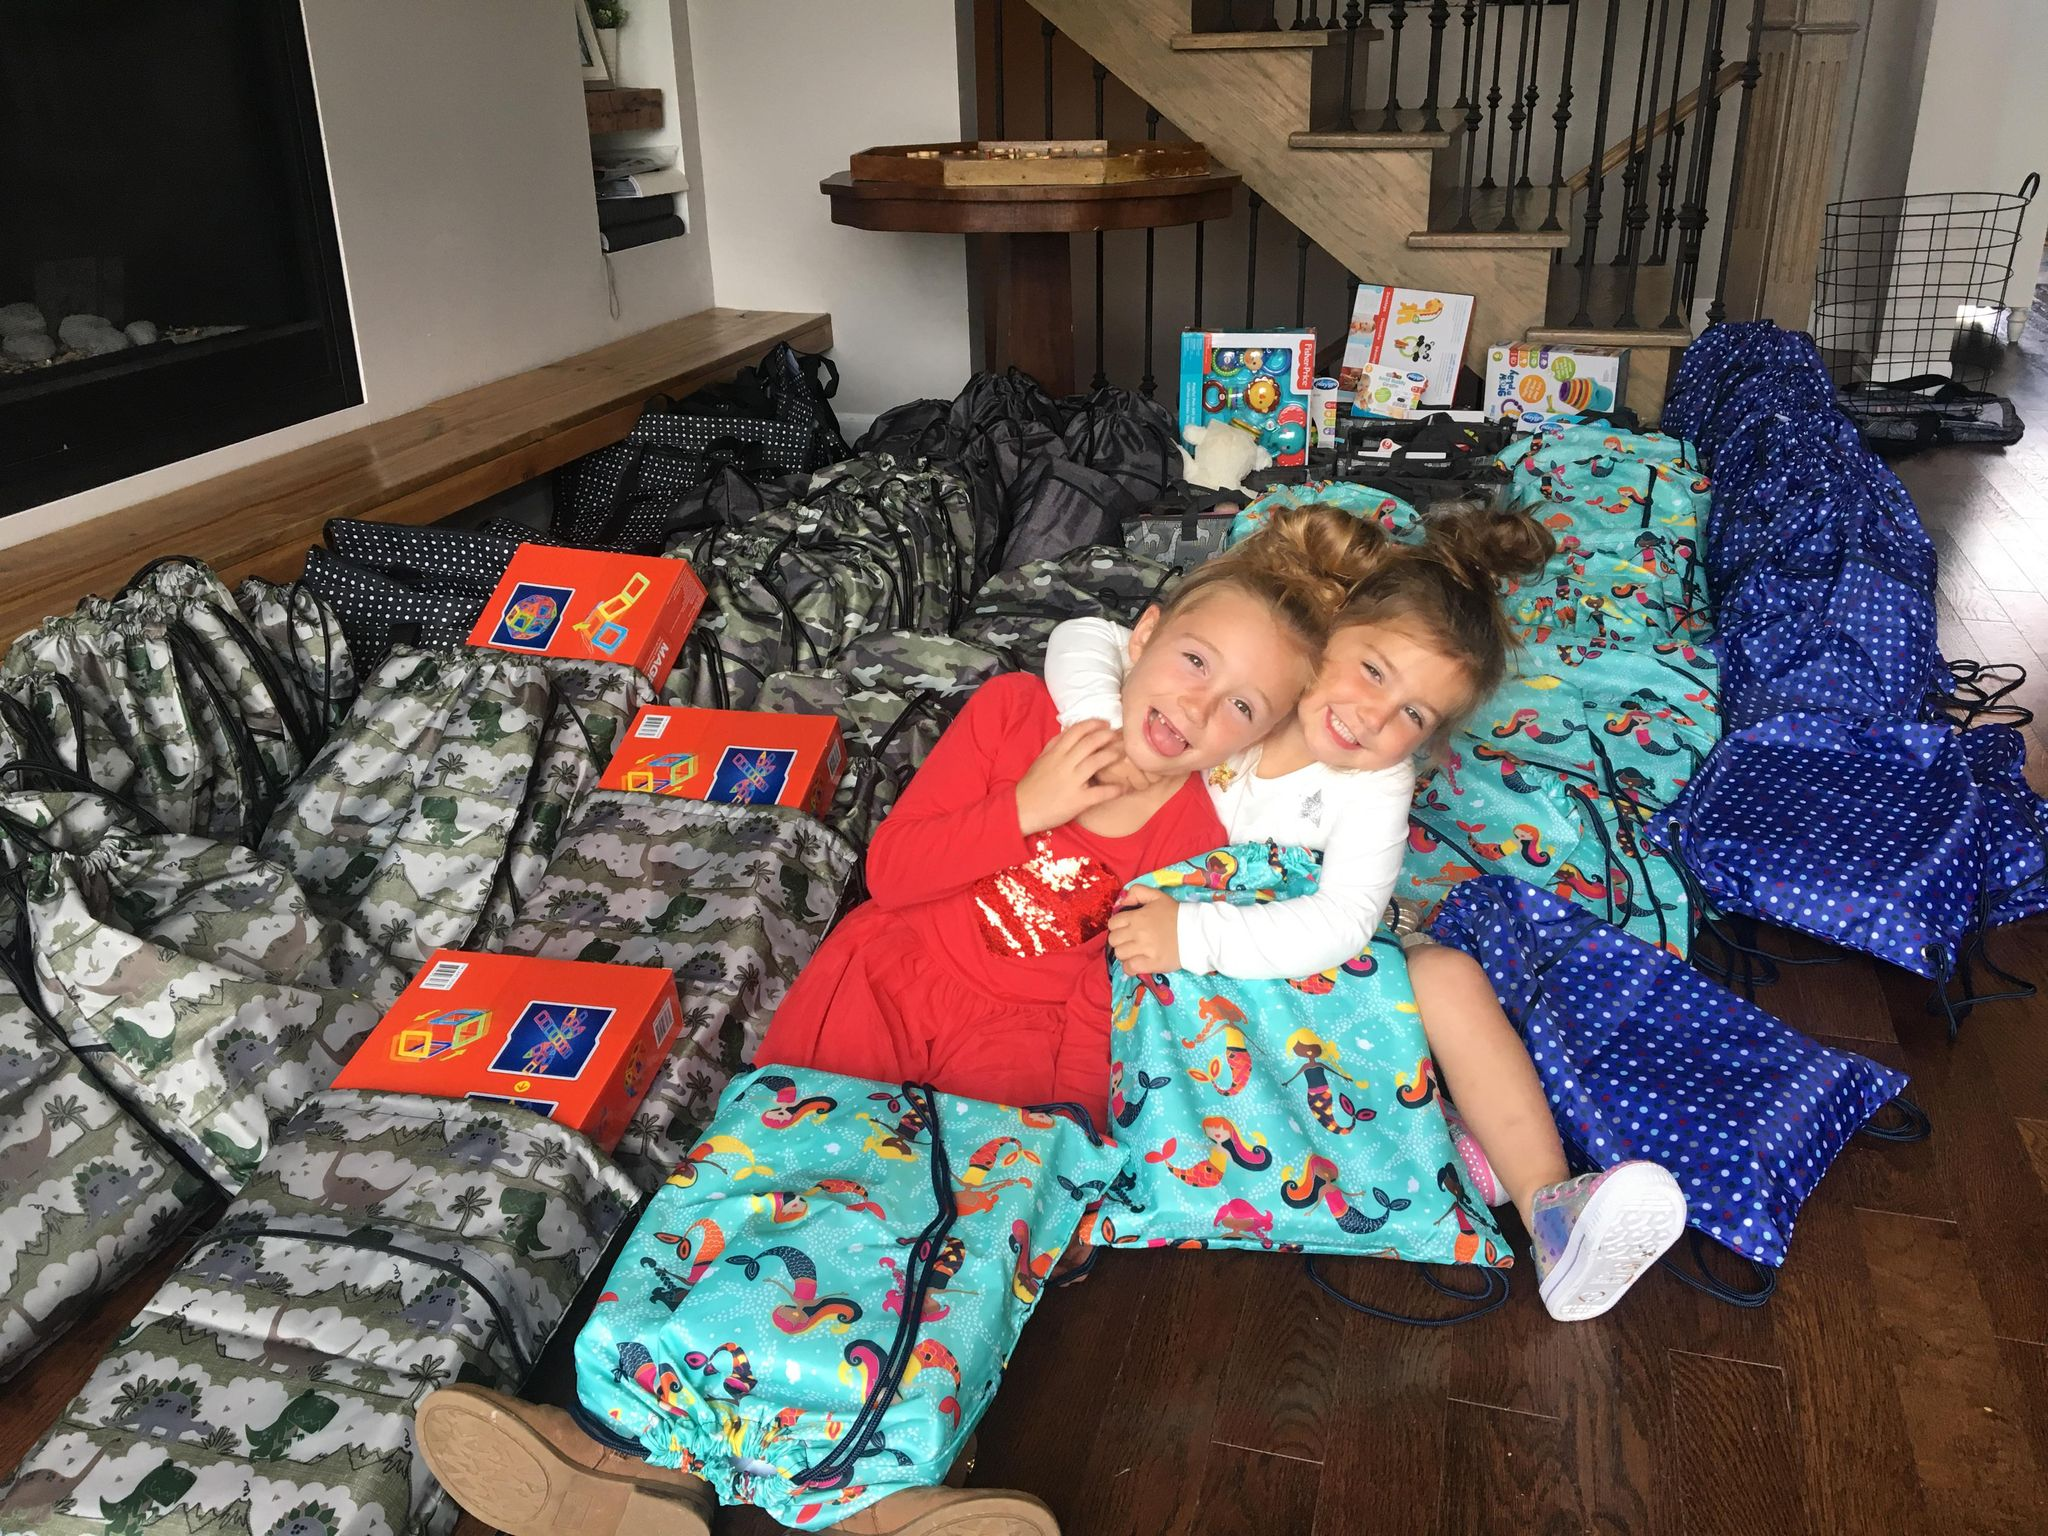 Donation drive looks to spread some Christmas cheer at Sick Kids